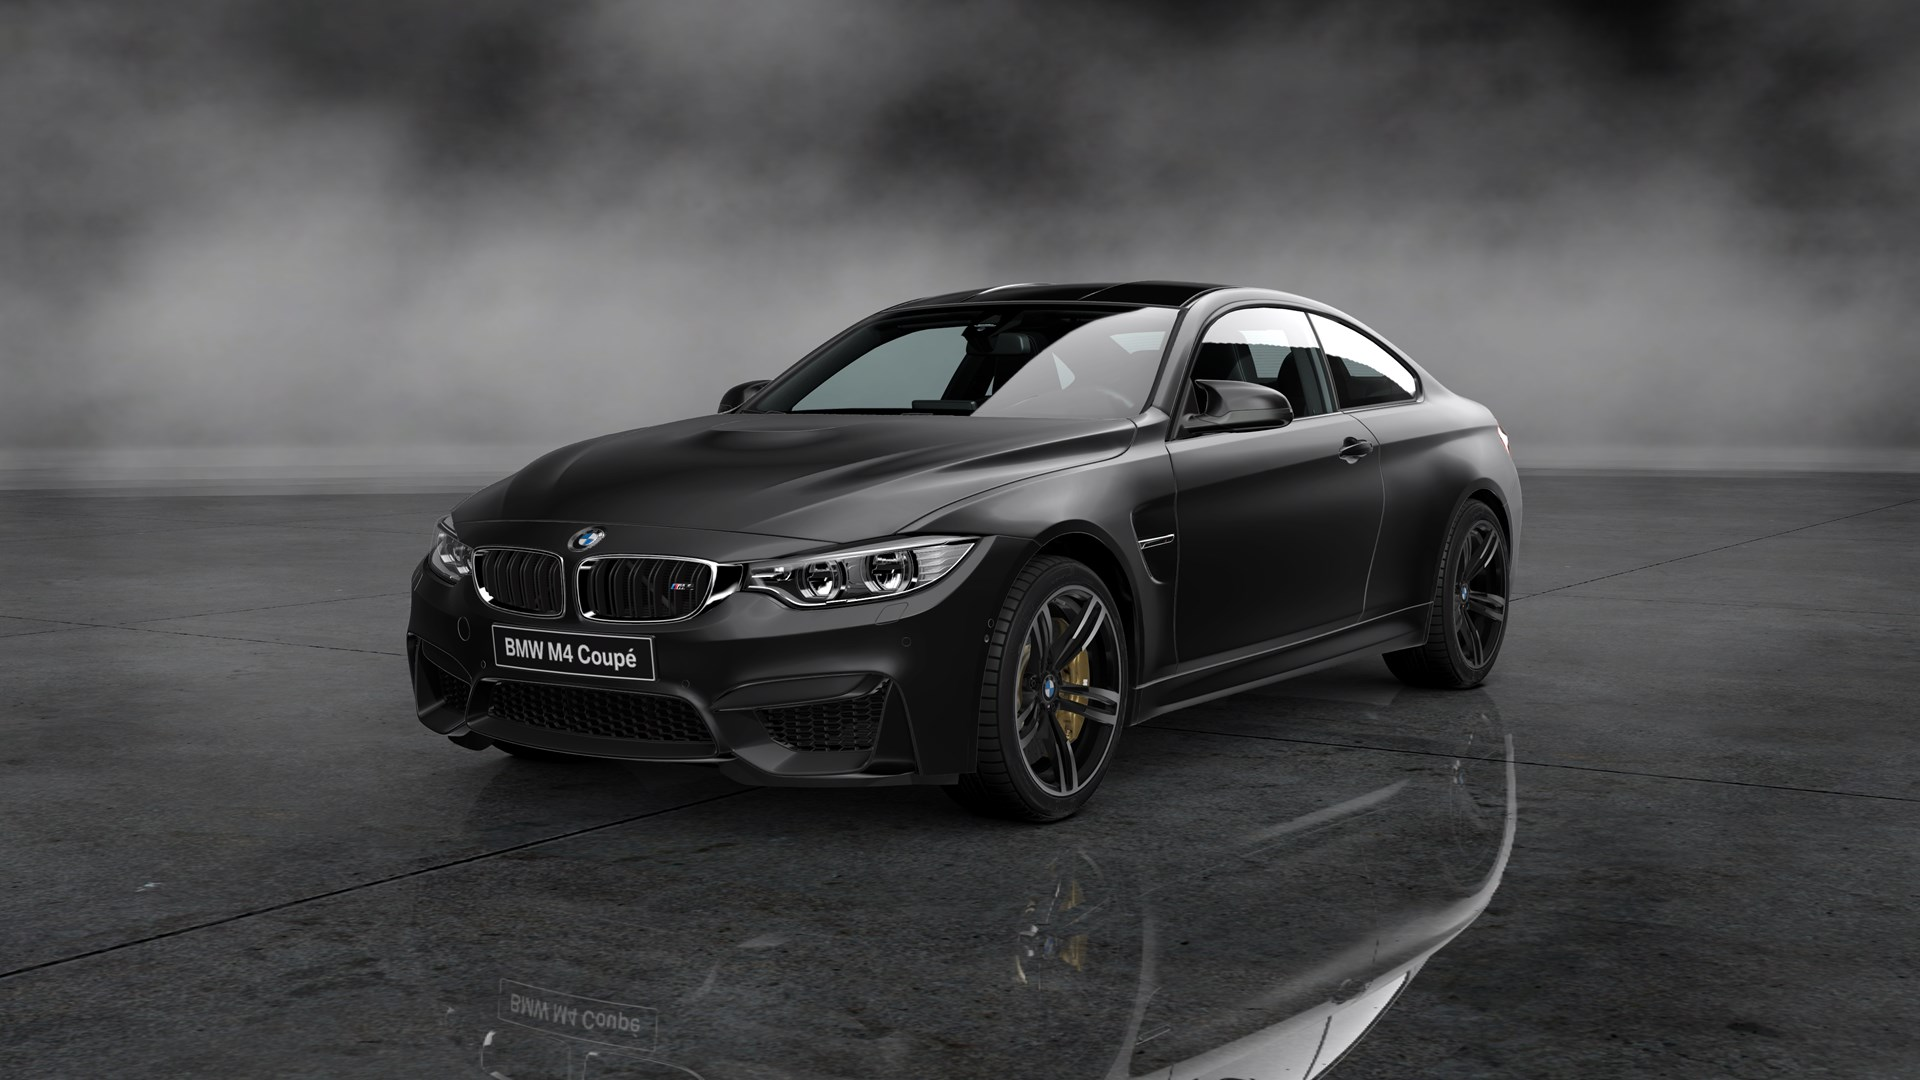 Bmw M4 Coupe Wallpaper Hd 3003679 Hd Wallpaper Backgrounds Download